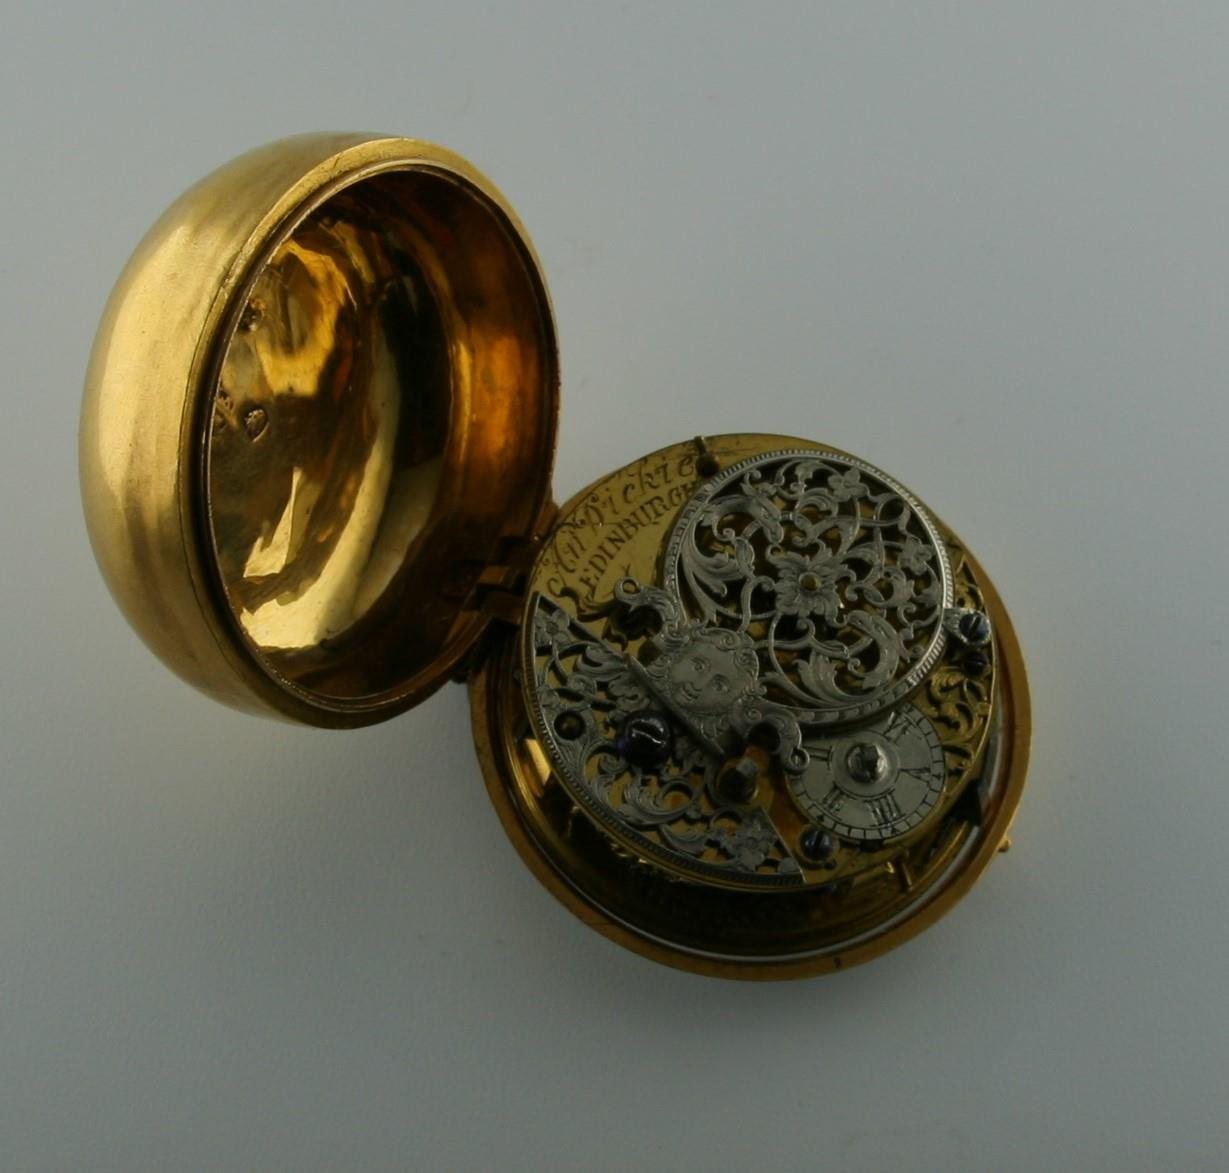 AN 18TH CENTURY GOLD PAIR CASED POCKET WATCH BY ANDREW DICKIE the signed gold dial with Roman - Image 3 of 6